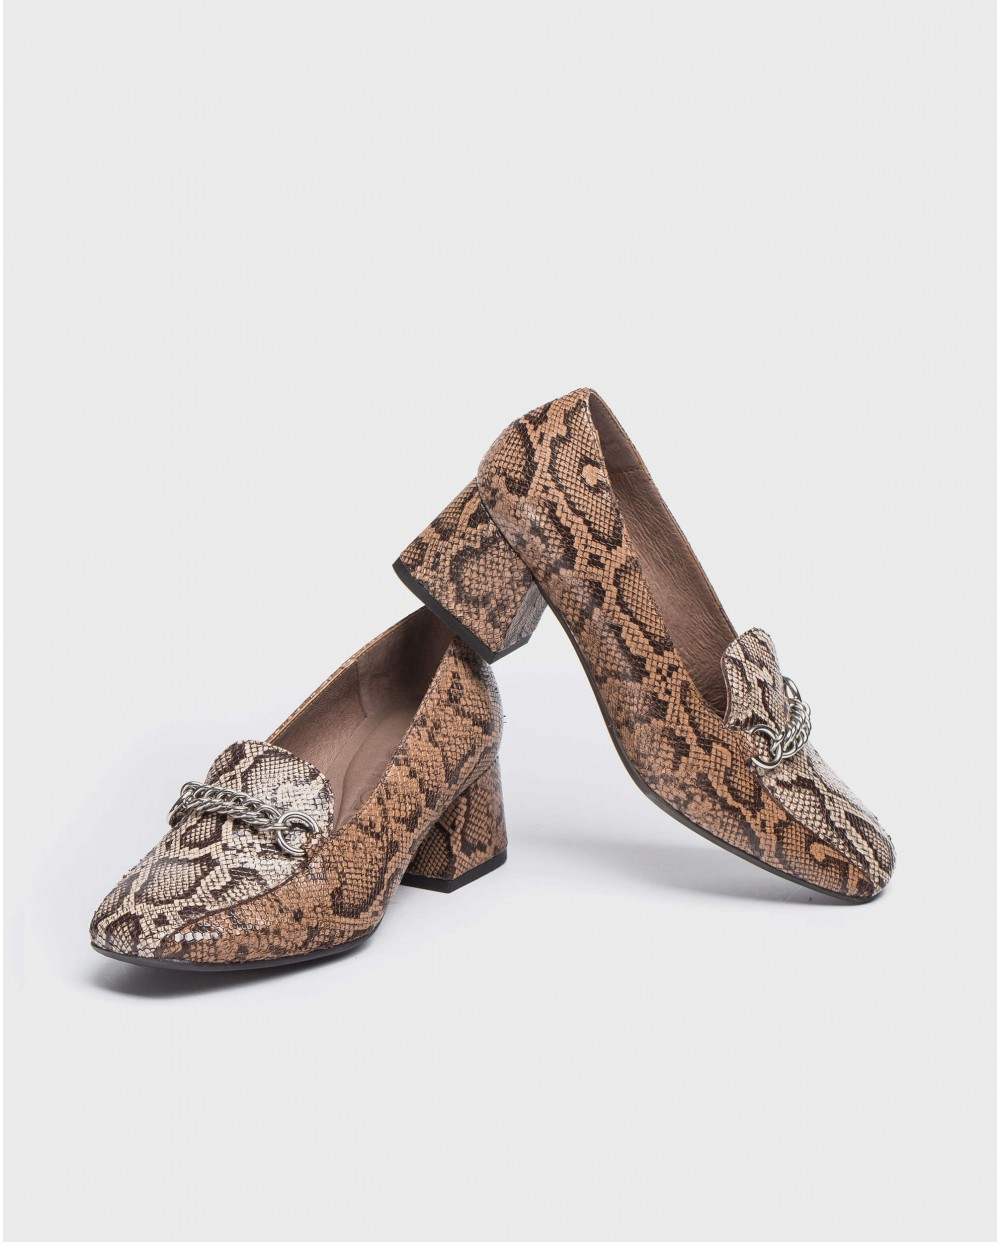 Wonders-Flat Shoes-High heeled moccasin with chain